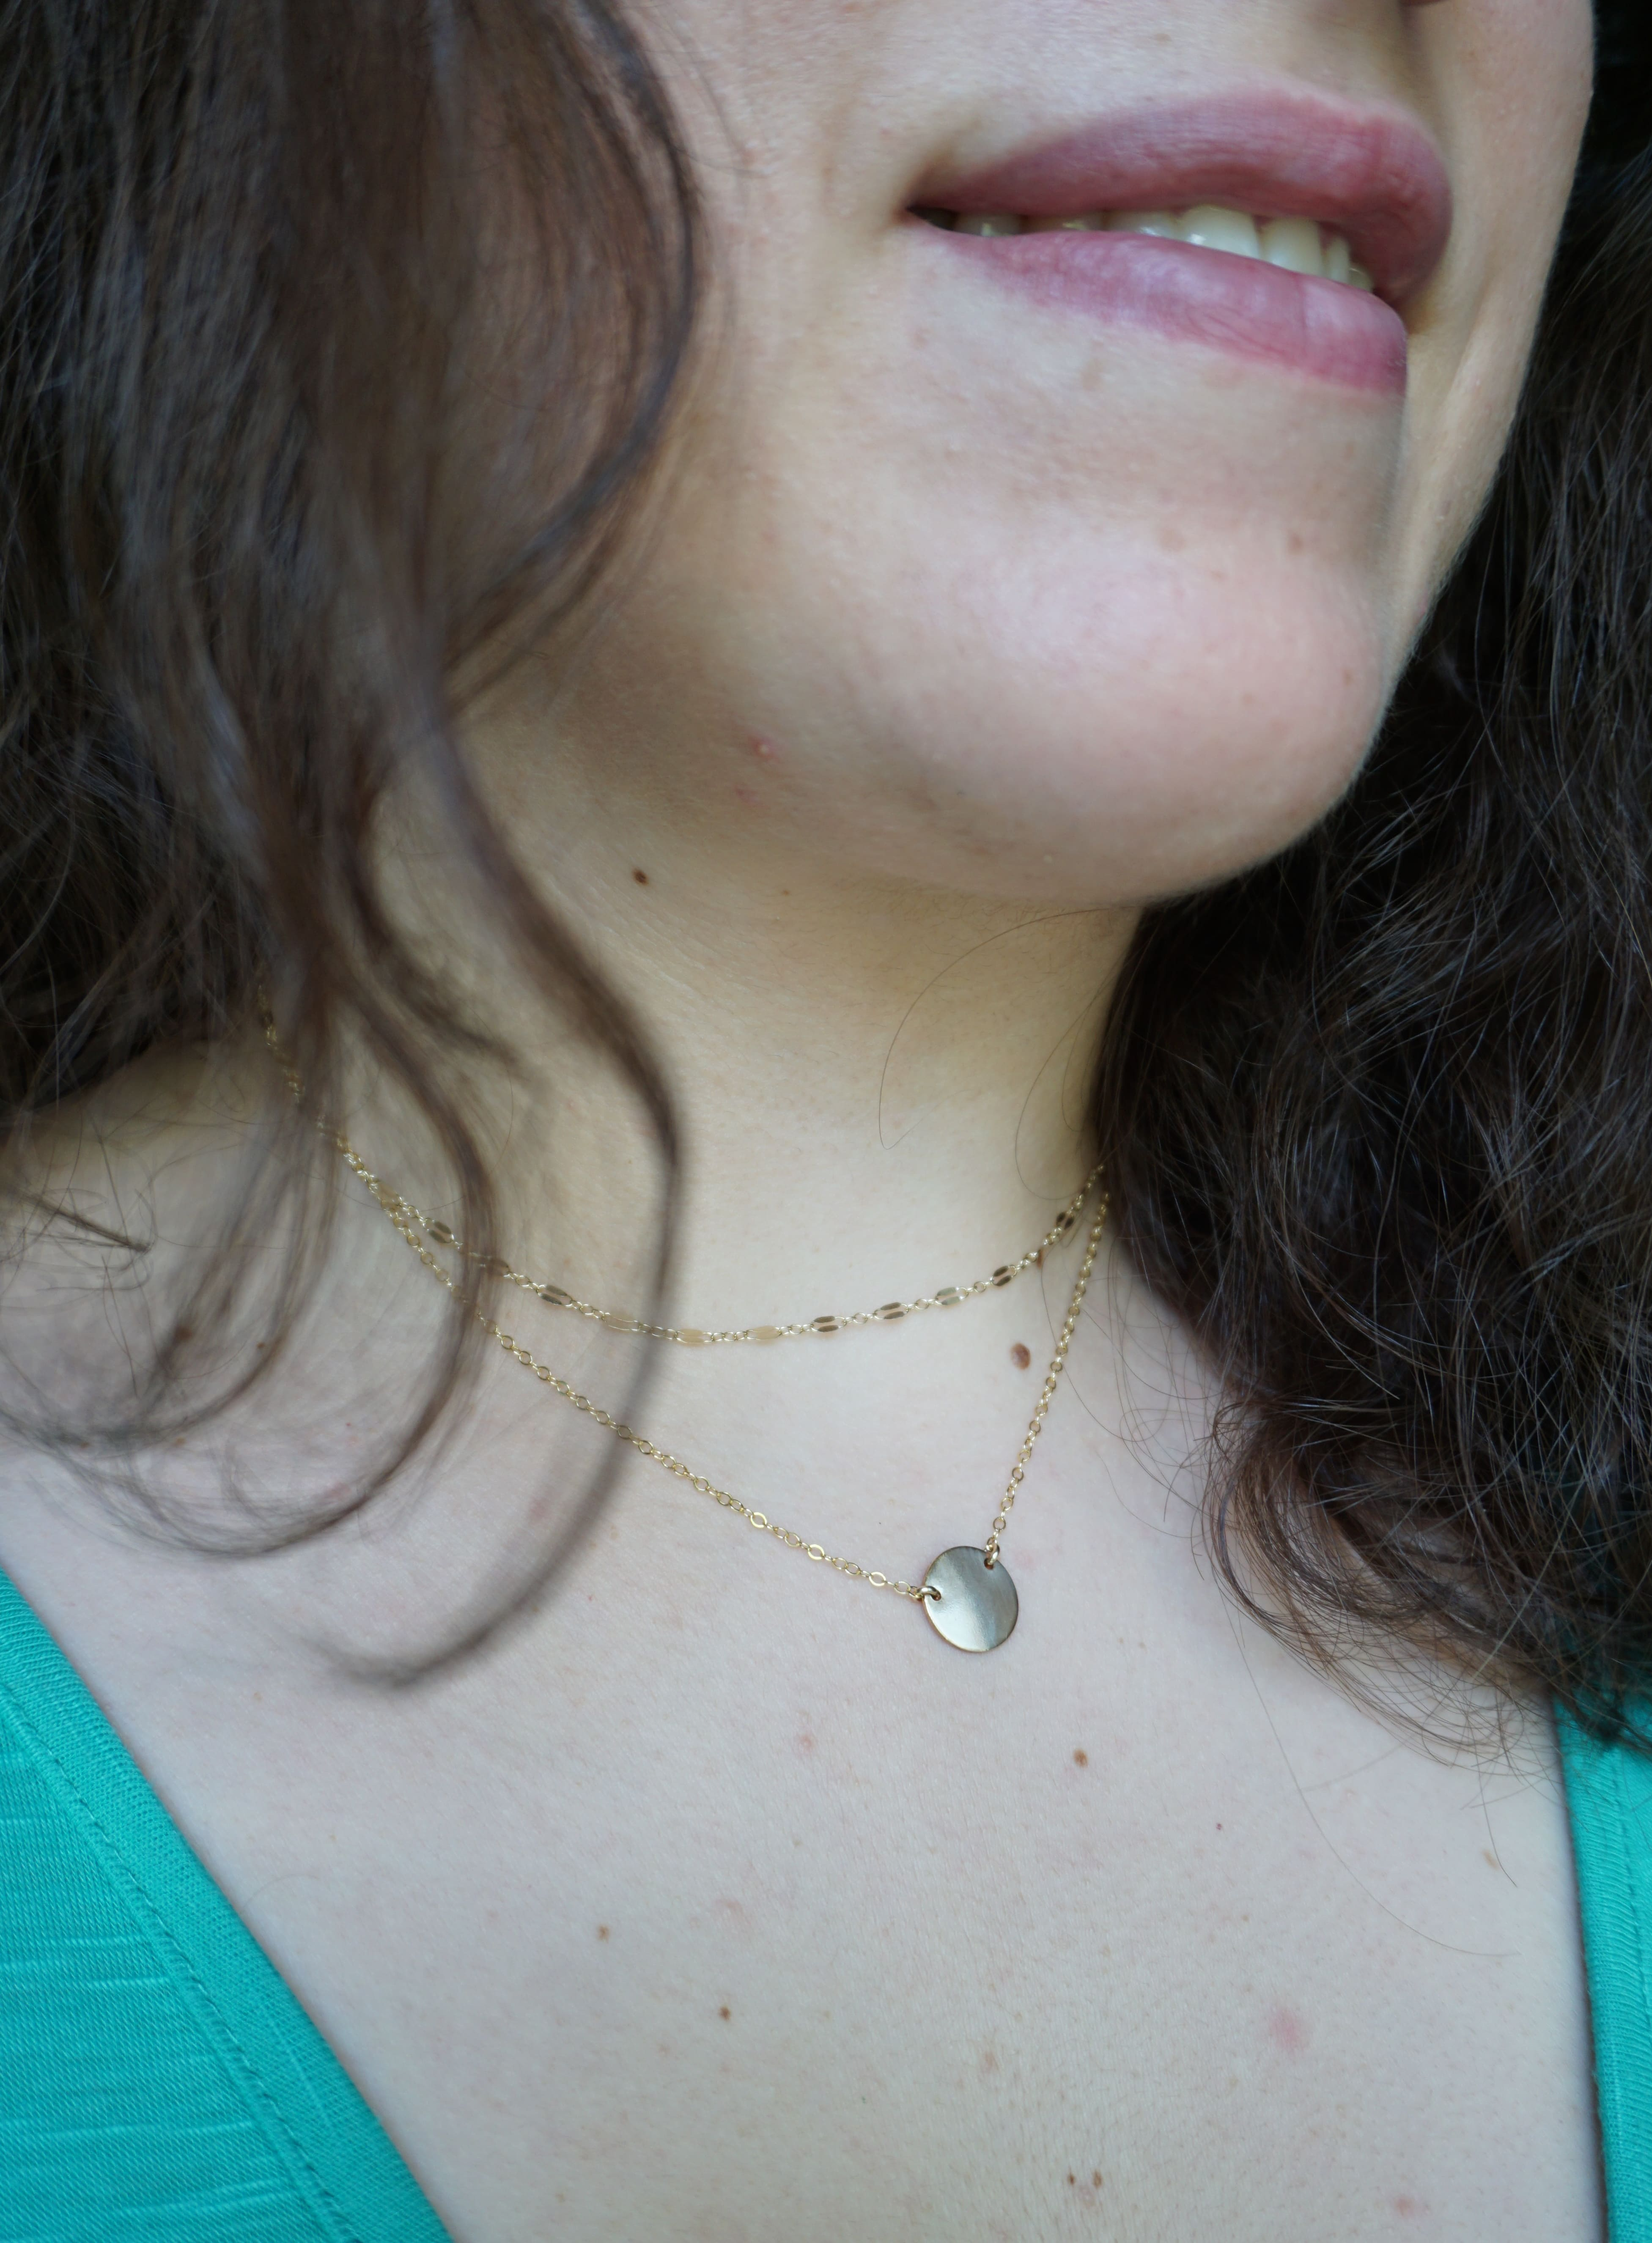 9faada67f My Made By Mary Necklaces Review - Blossomful